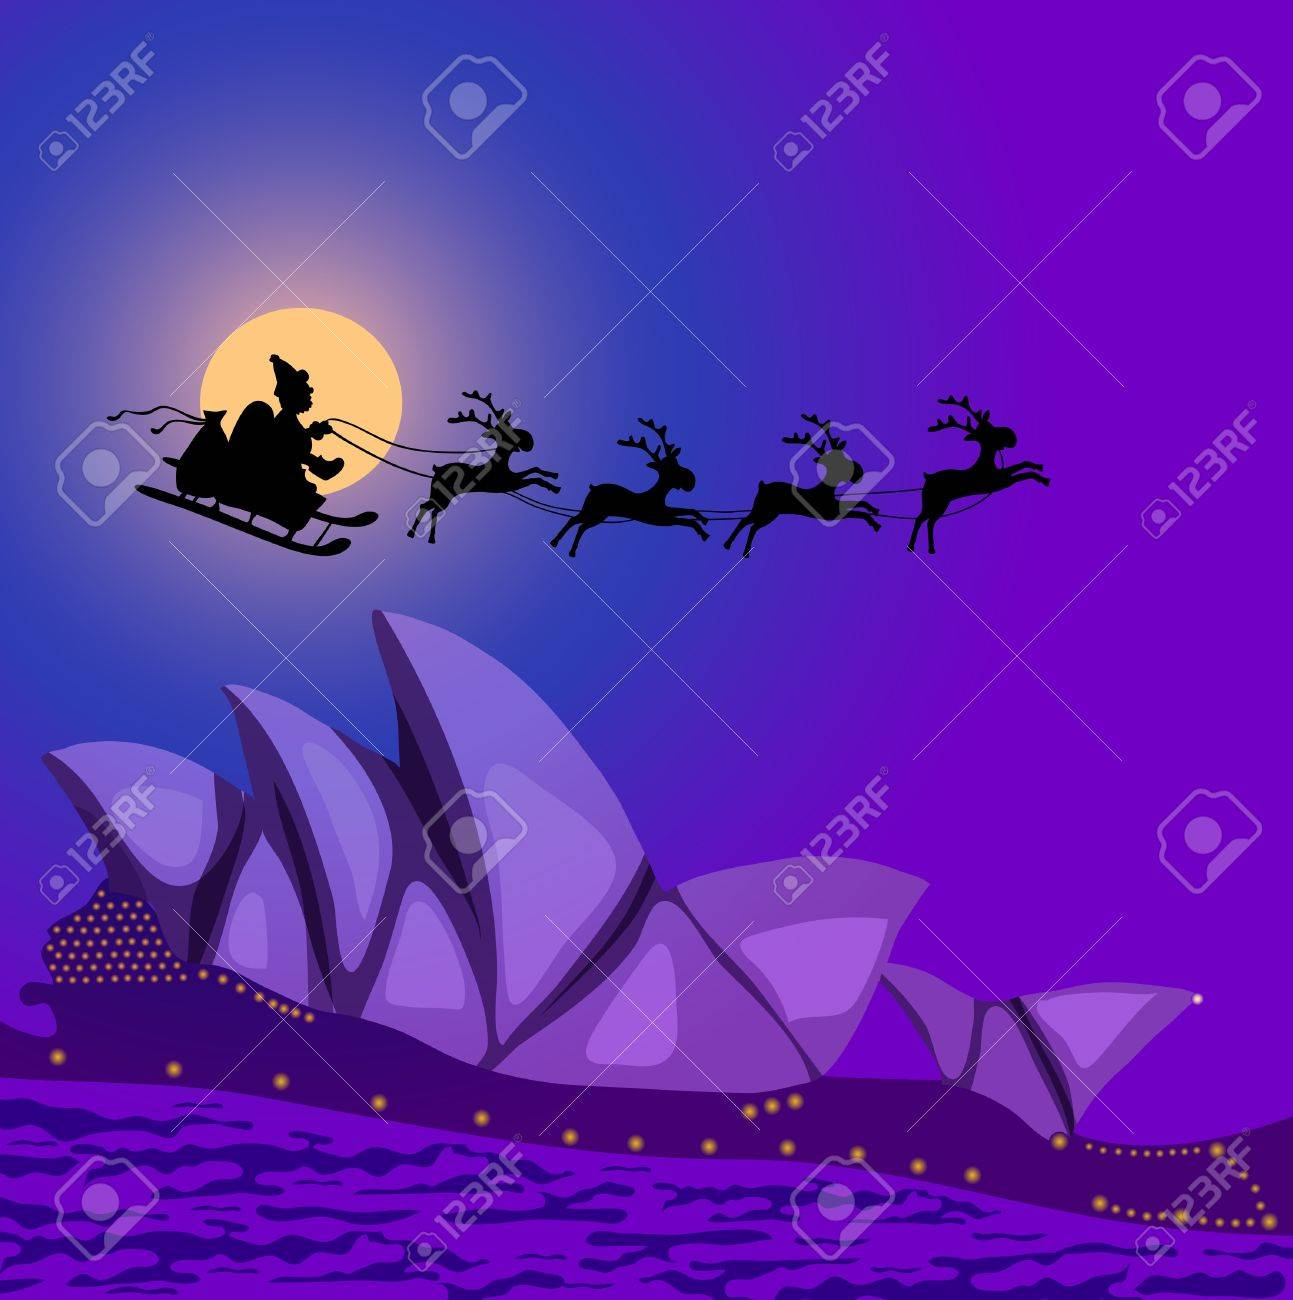 illustration of Santa Claus with reindeers flying over Australia Stock Vector - 9727987